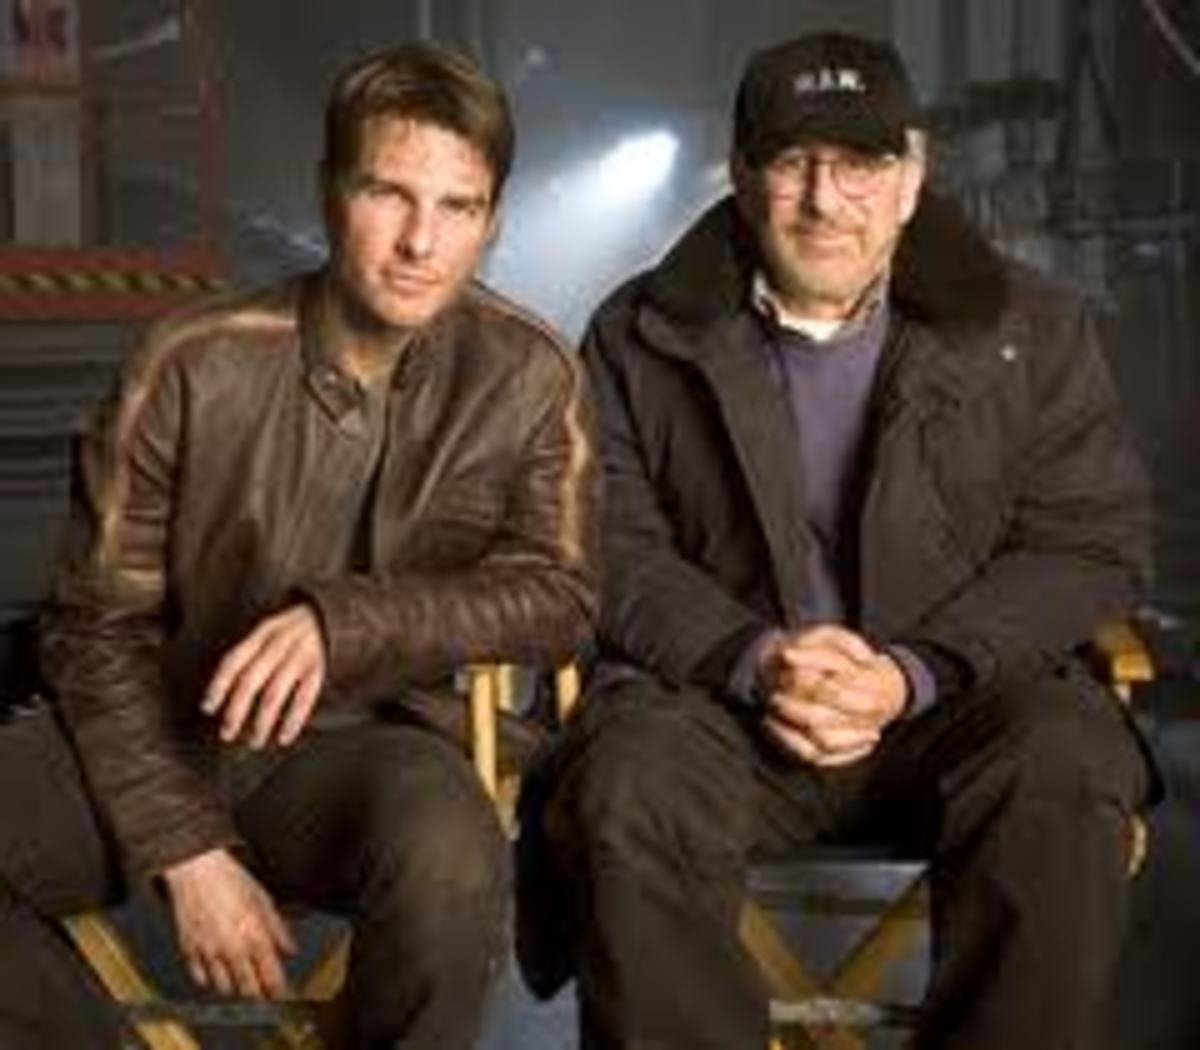 Tom Cruise and Steven Spielberg on the set of War of the Worlds